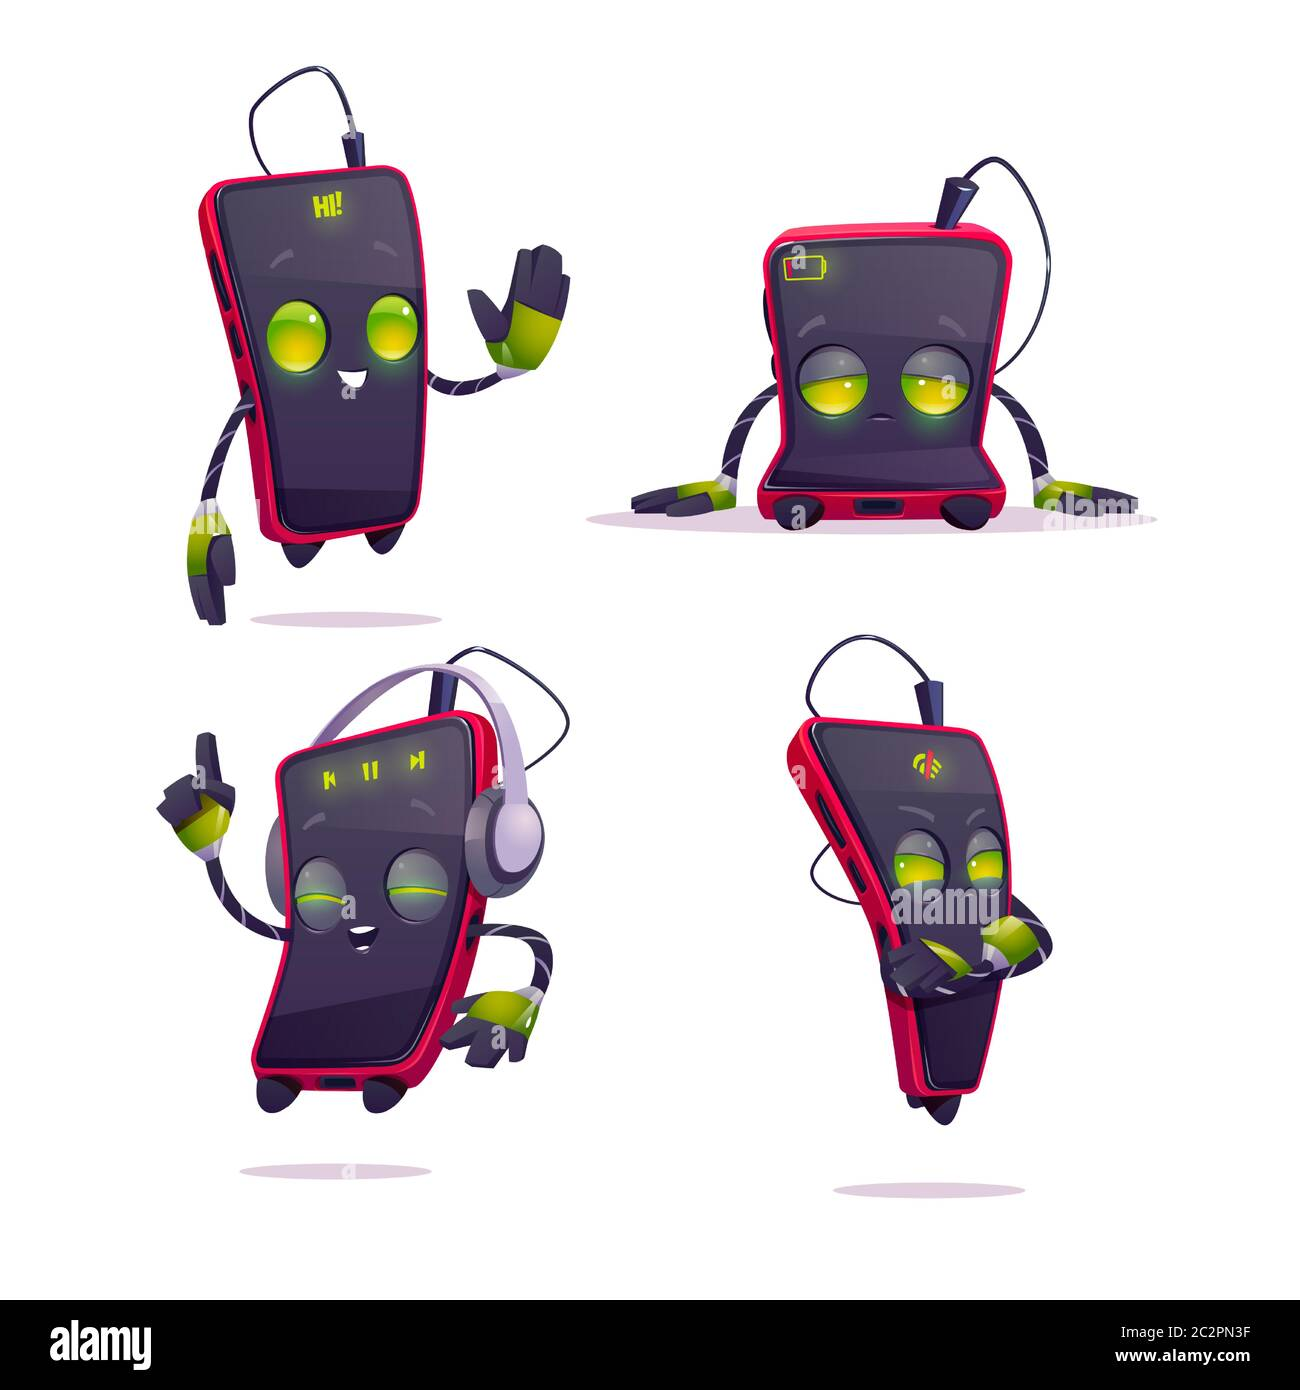 Cute Smartphone Character In Different Poses Vector Set Of Cartoon Chat Bot Funny Mobile Phone Greeting